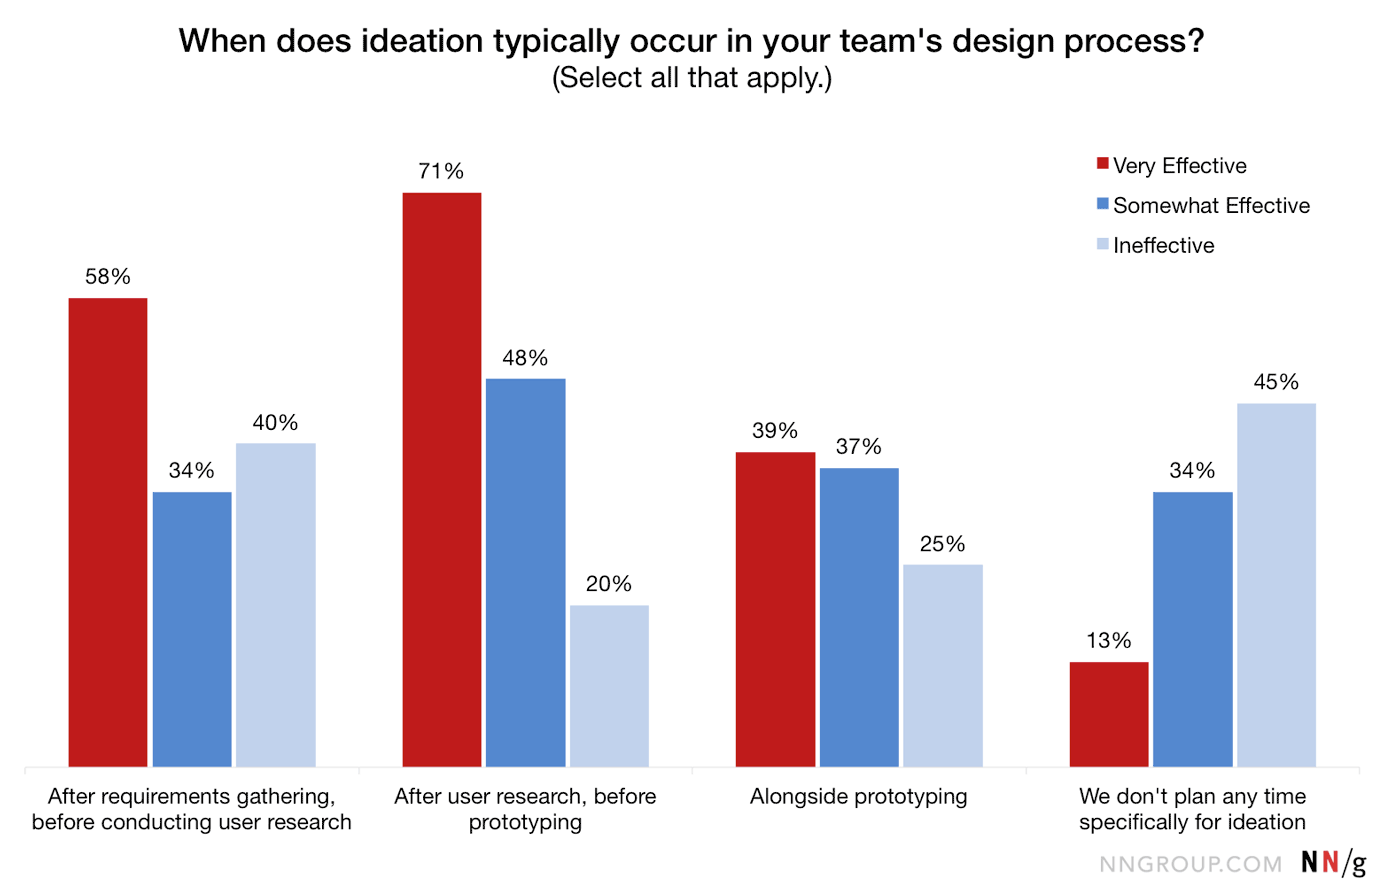 Chart of responses to when ideation occurs within the design process, according to effectiveness levels